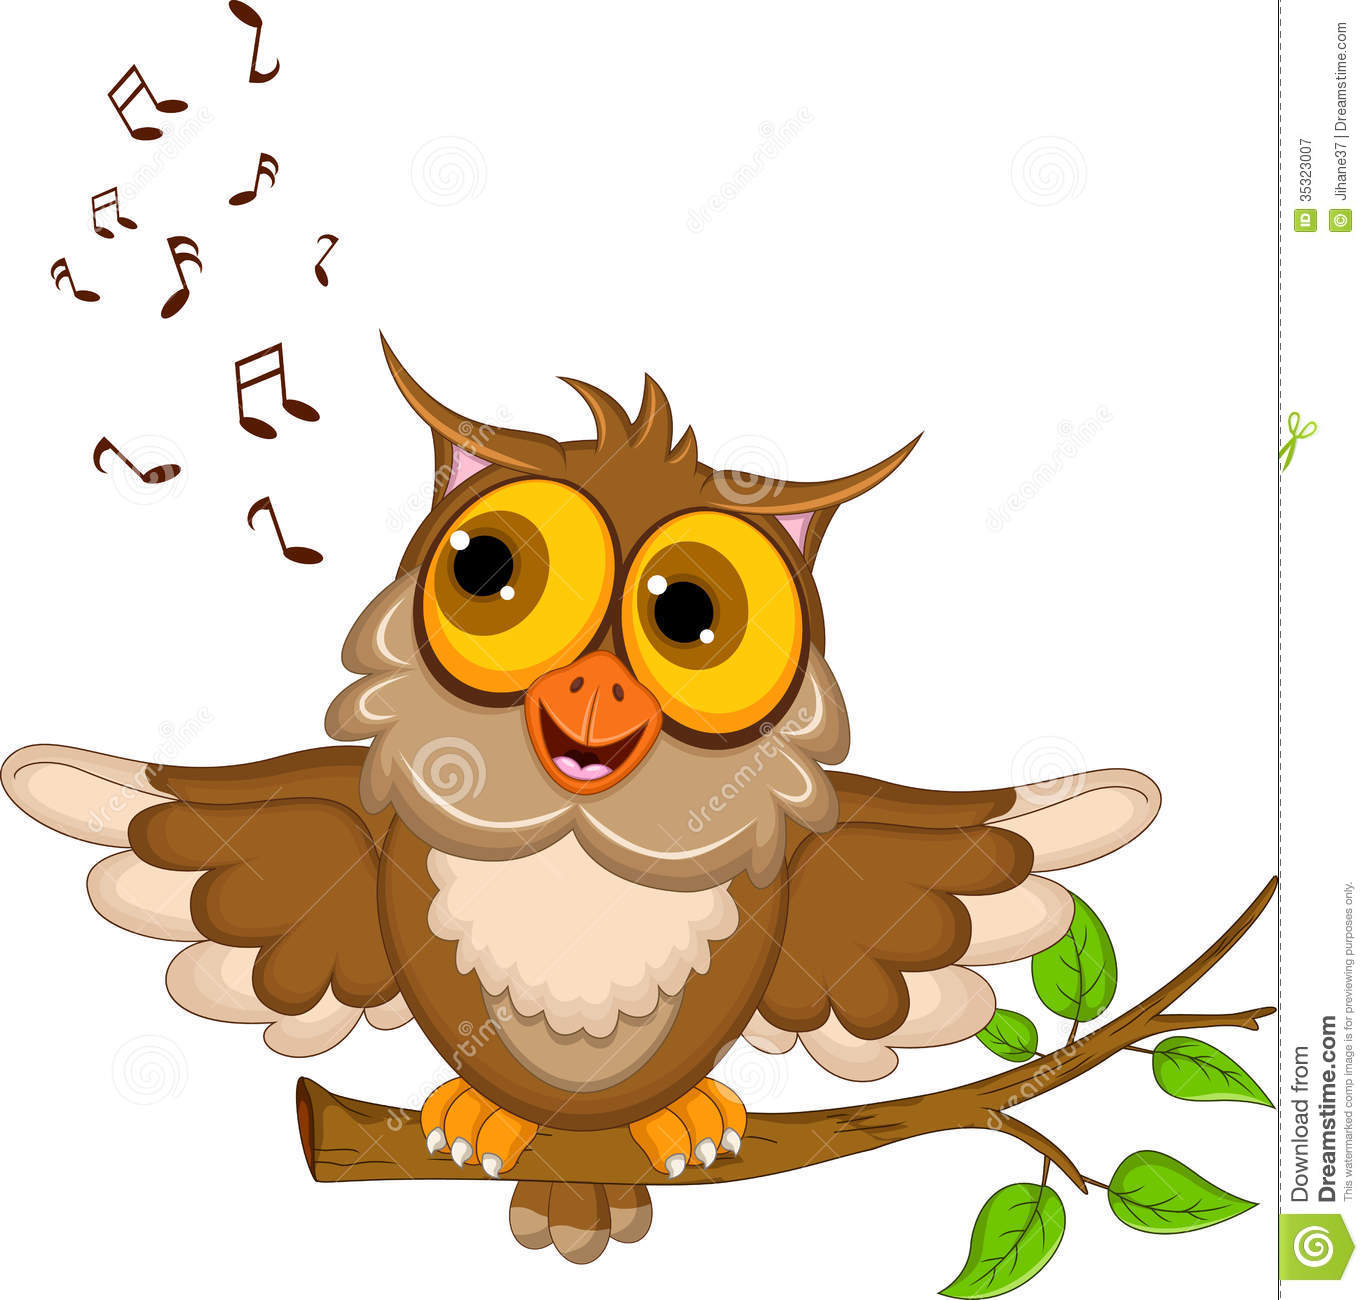 Moving clipart owl Owl Singing Clipart Owl Singing